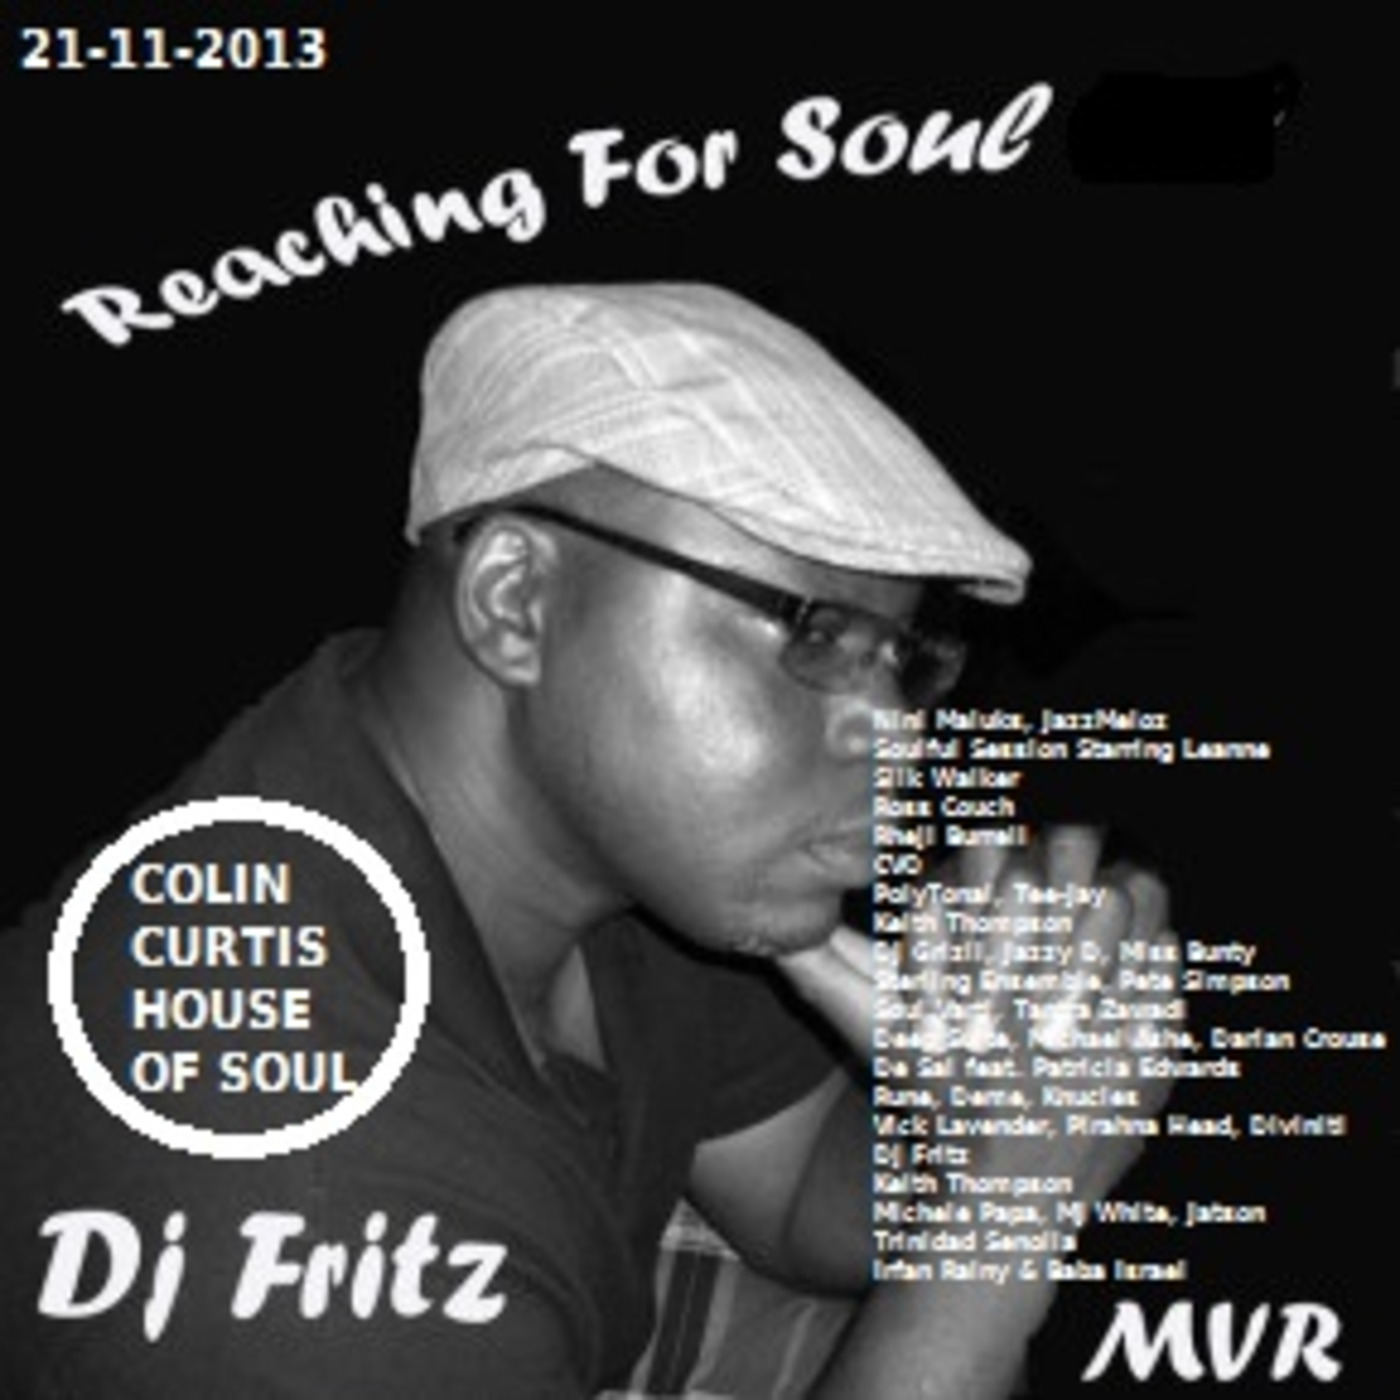 Colin Curtis presents THE HOUSE OF SOUL SHOW More Soulful Deep Afro Jazzy House 21st November 2013 MP3